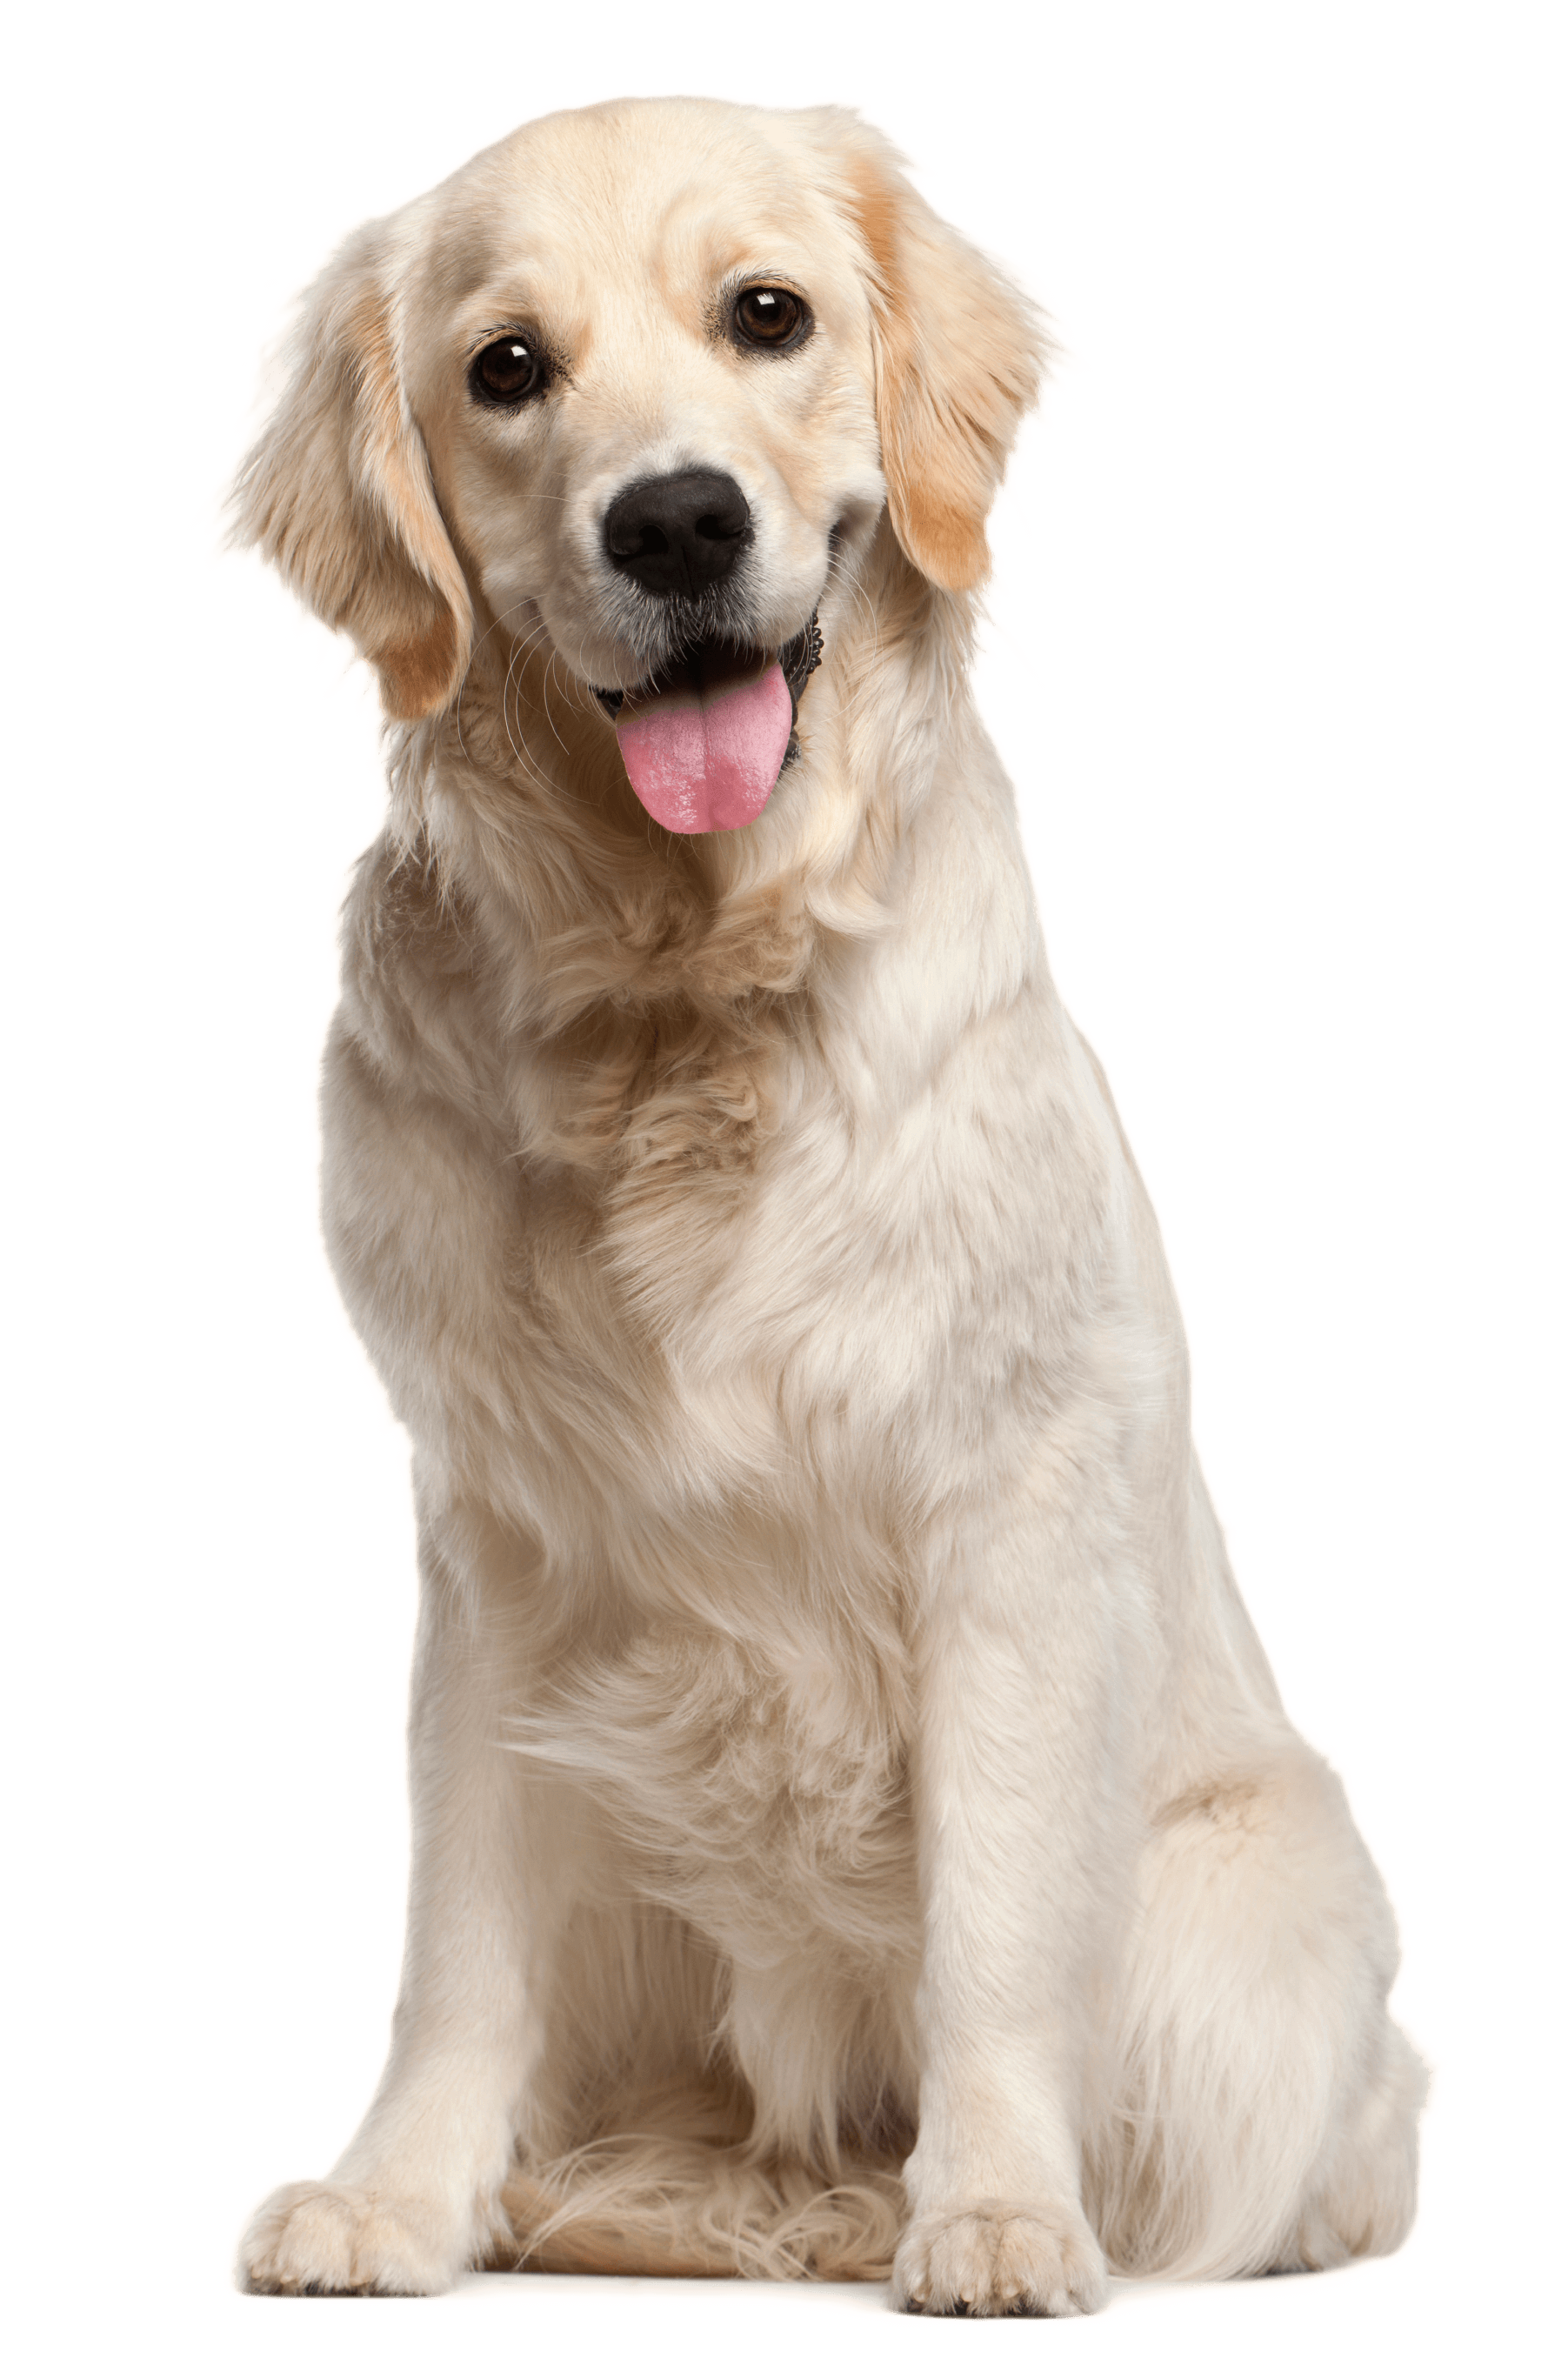 Pet clipart golden retriever puppy. Strategies on how to